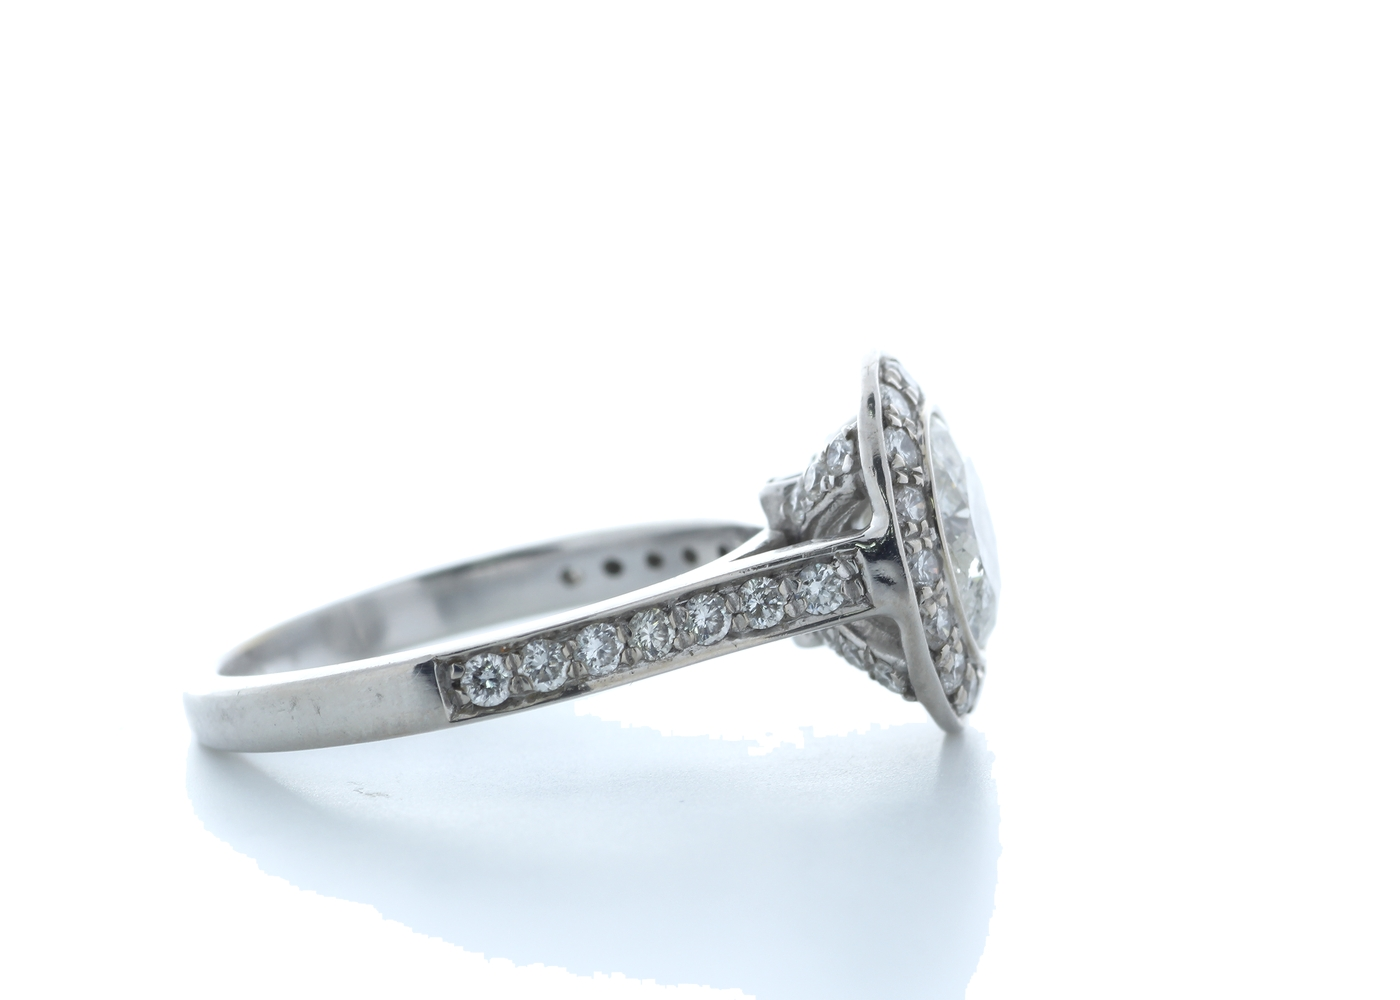 18ct White Gold Single Stone With Halo Setting Ring 2.00 (1.50) Carats - Image 4 of 5